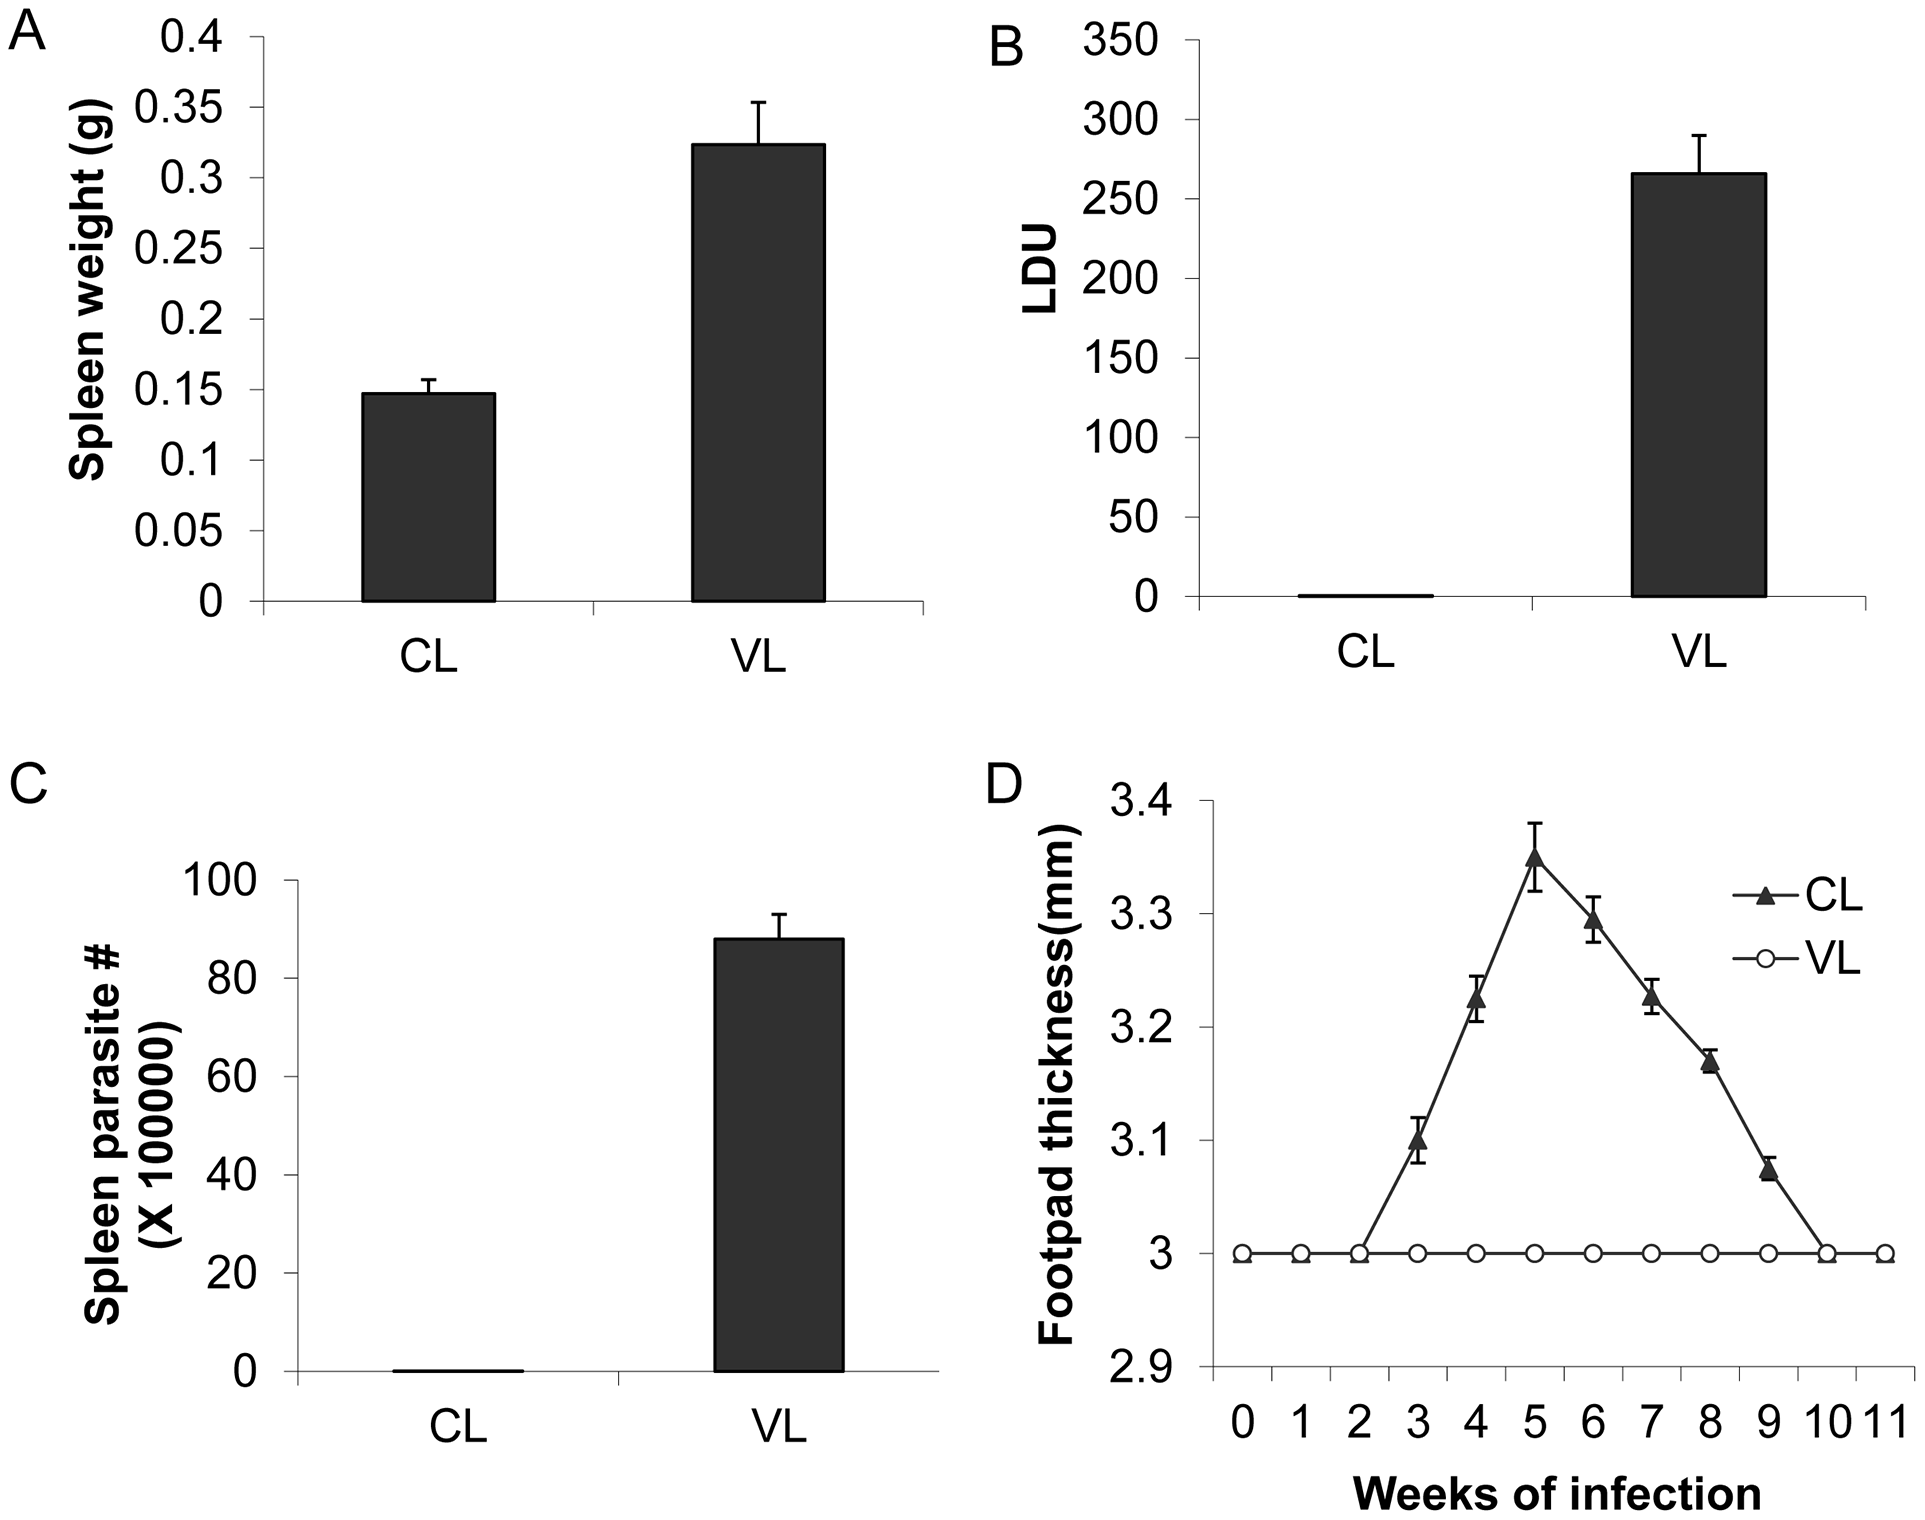 The <i>L. donovani</i> CL-SL (CL) and VL-SL (VL) strains cause different pathology in BALB/c mice.